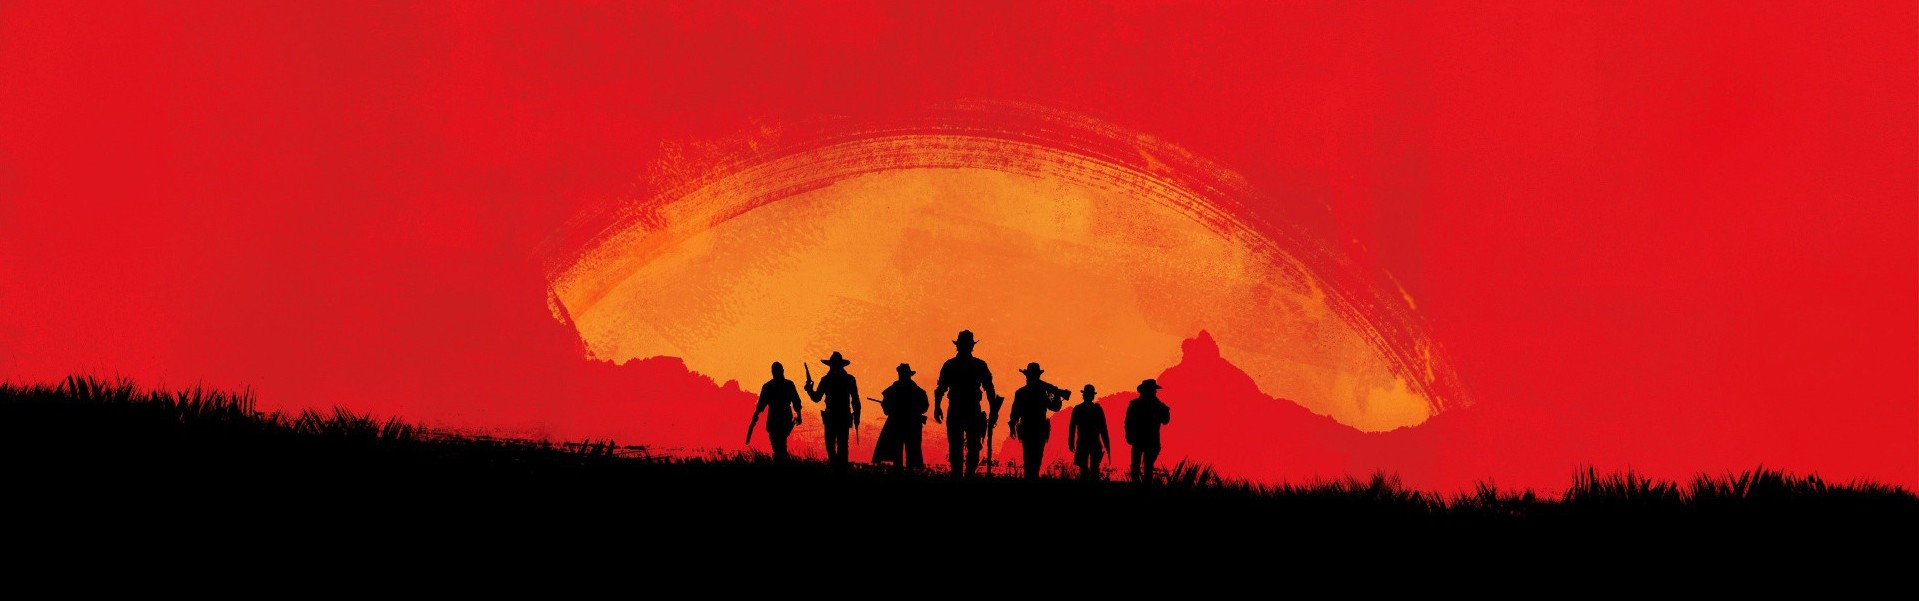 Red Dead Redemption 2: Special Edition Rockstar Games Launcher Key RU/CIS